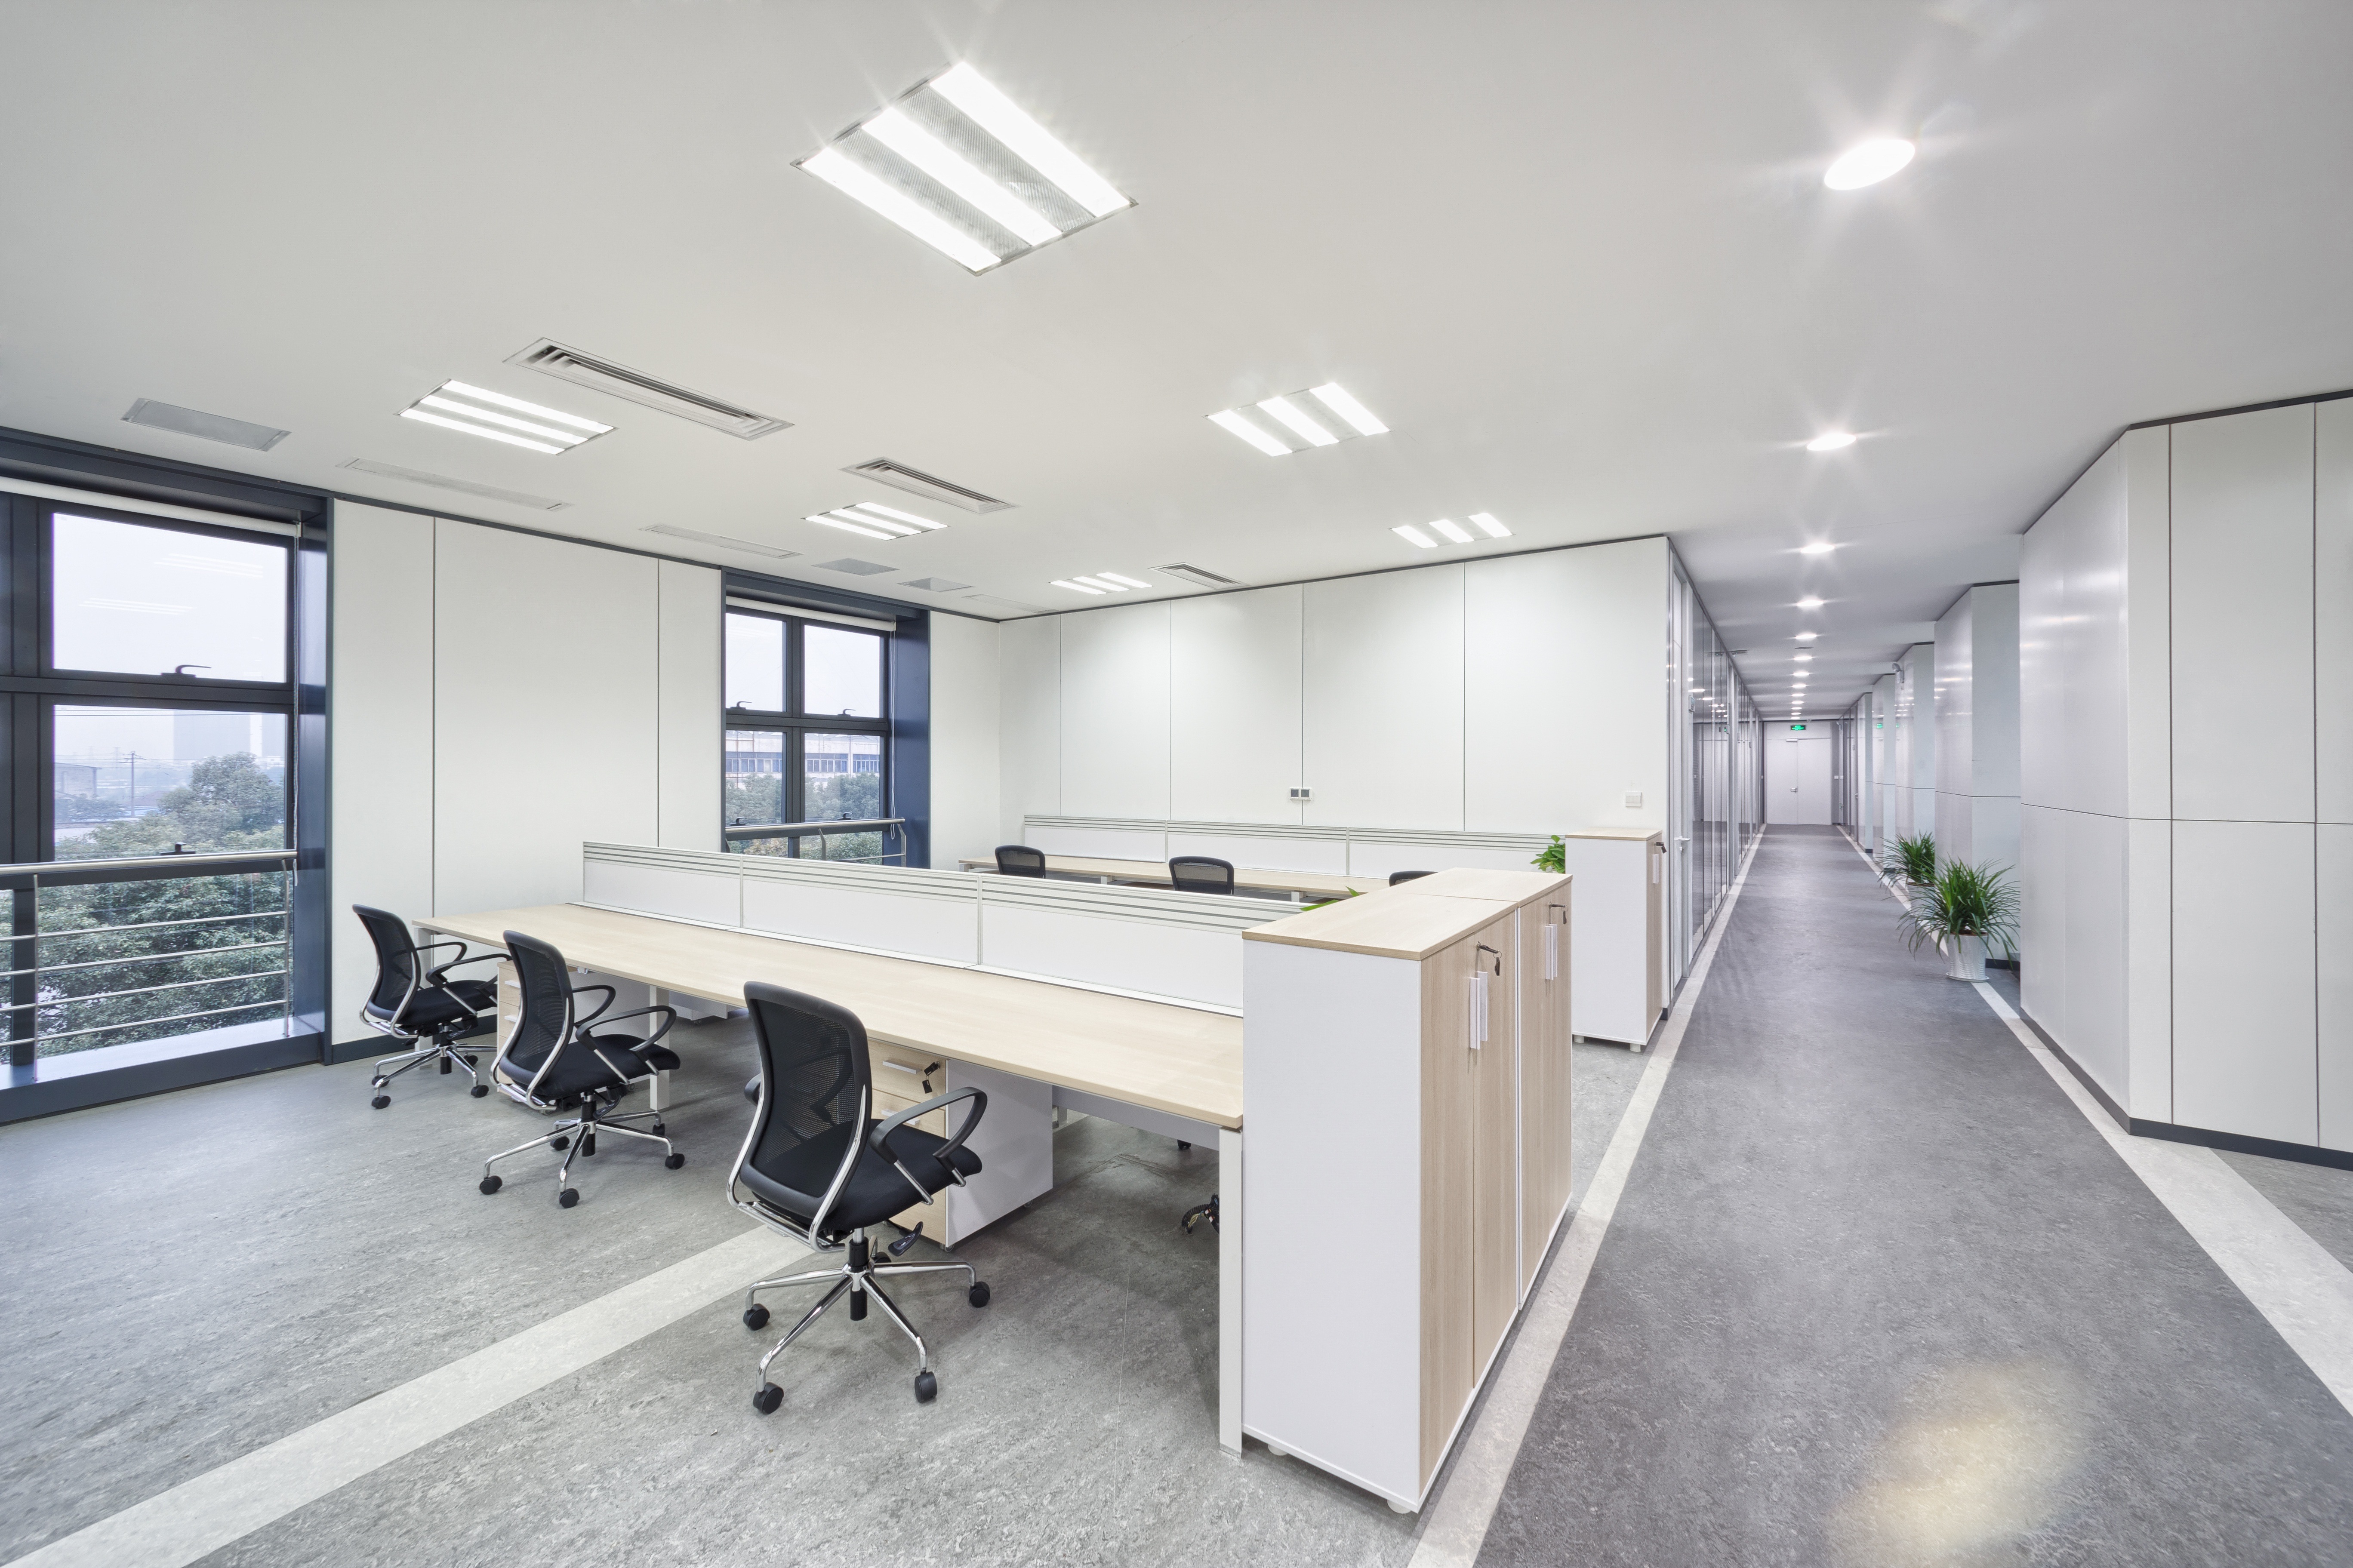 A clean and organised office